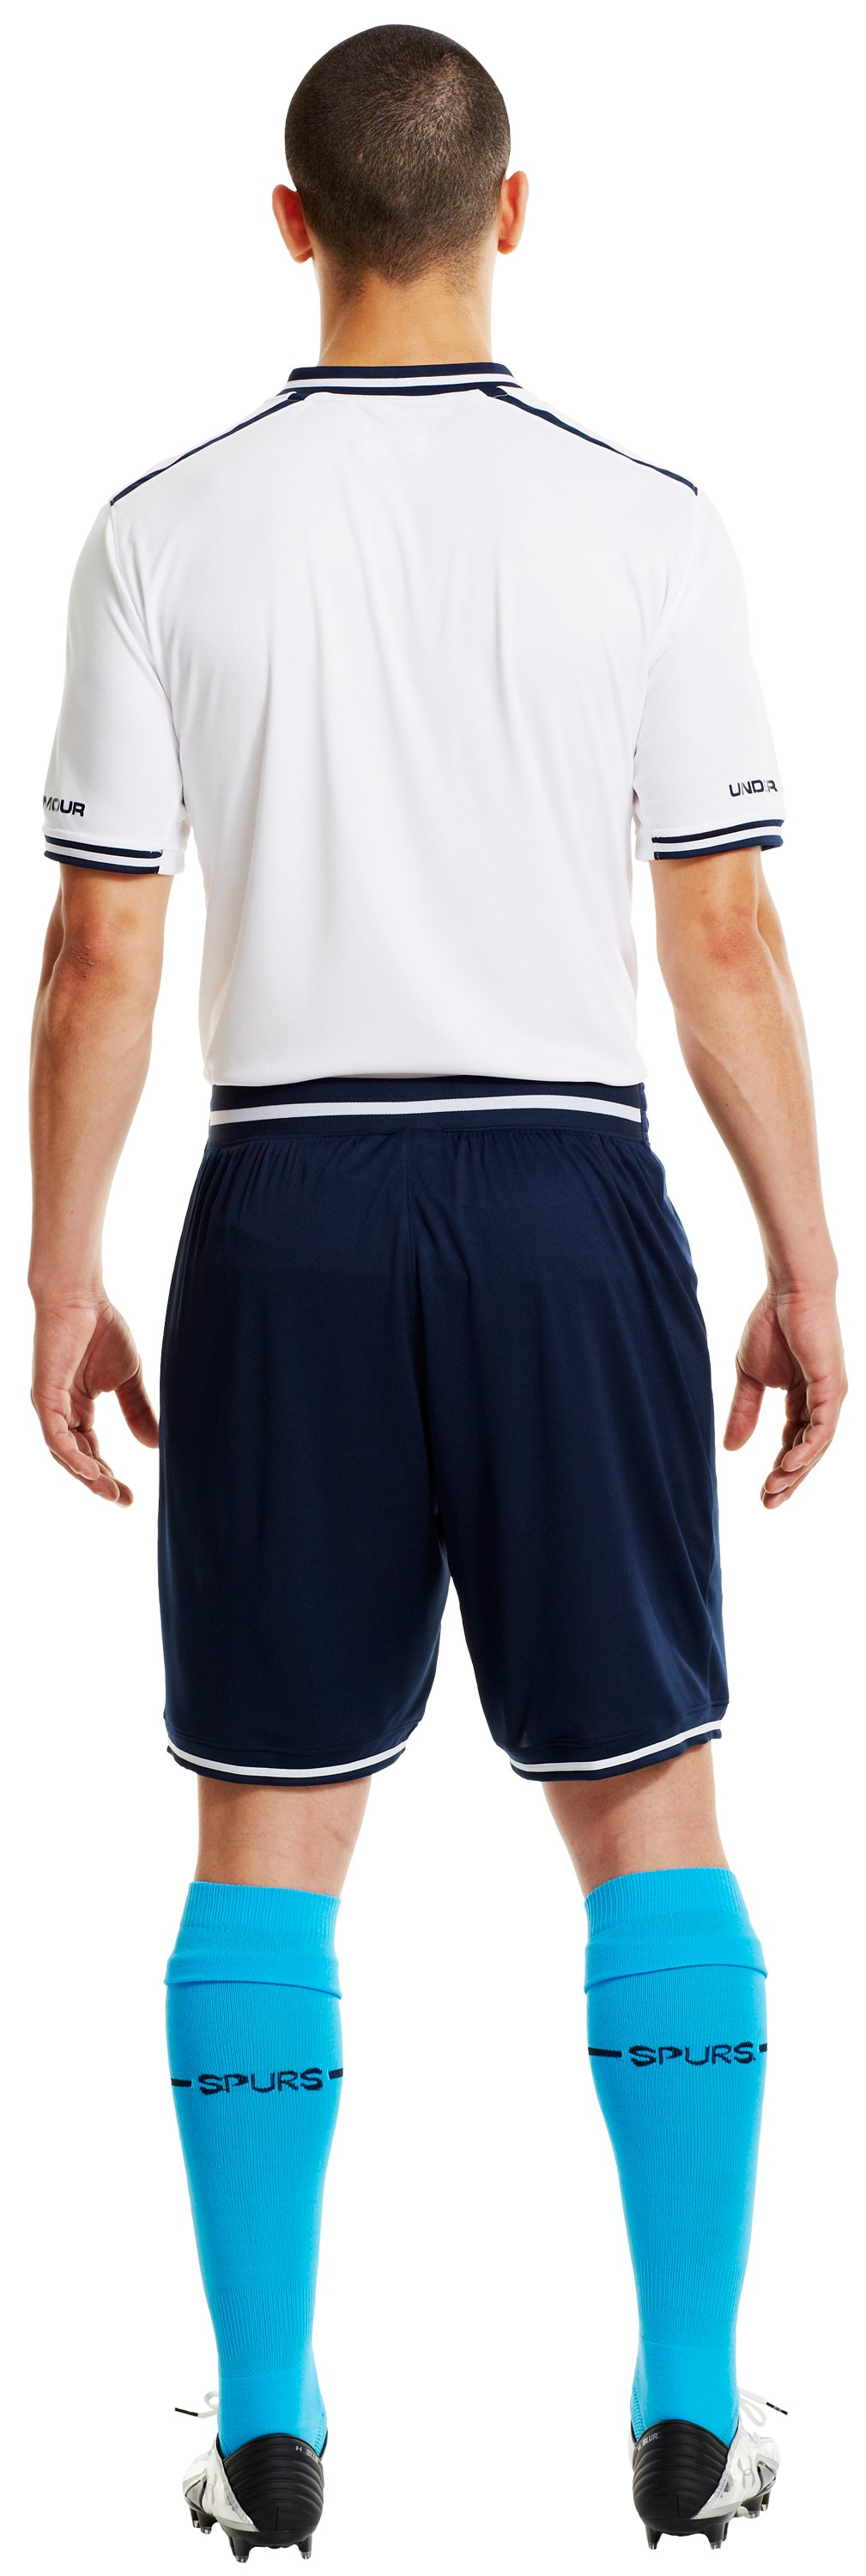 Men's Tottenham Hotspur 13/14 Home Shorts, White, Back